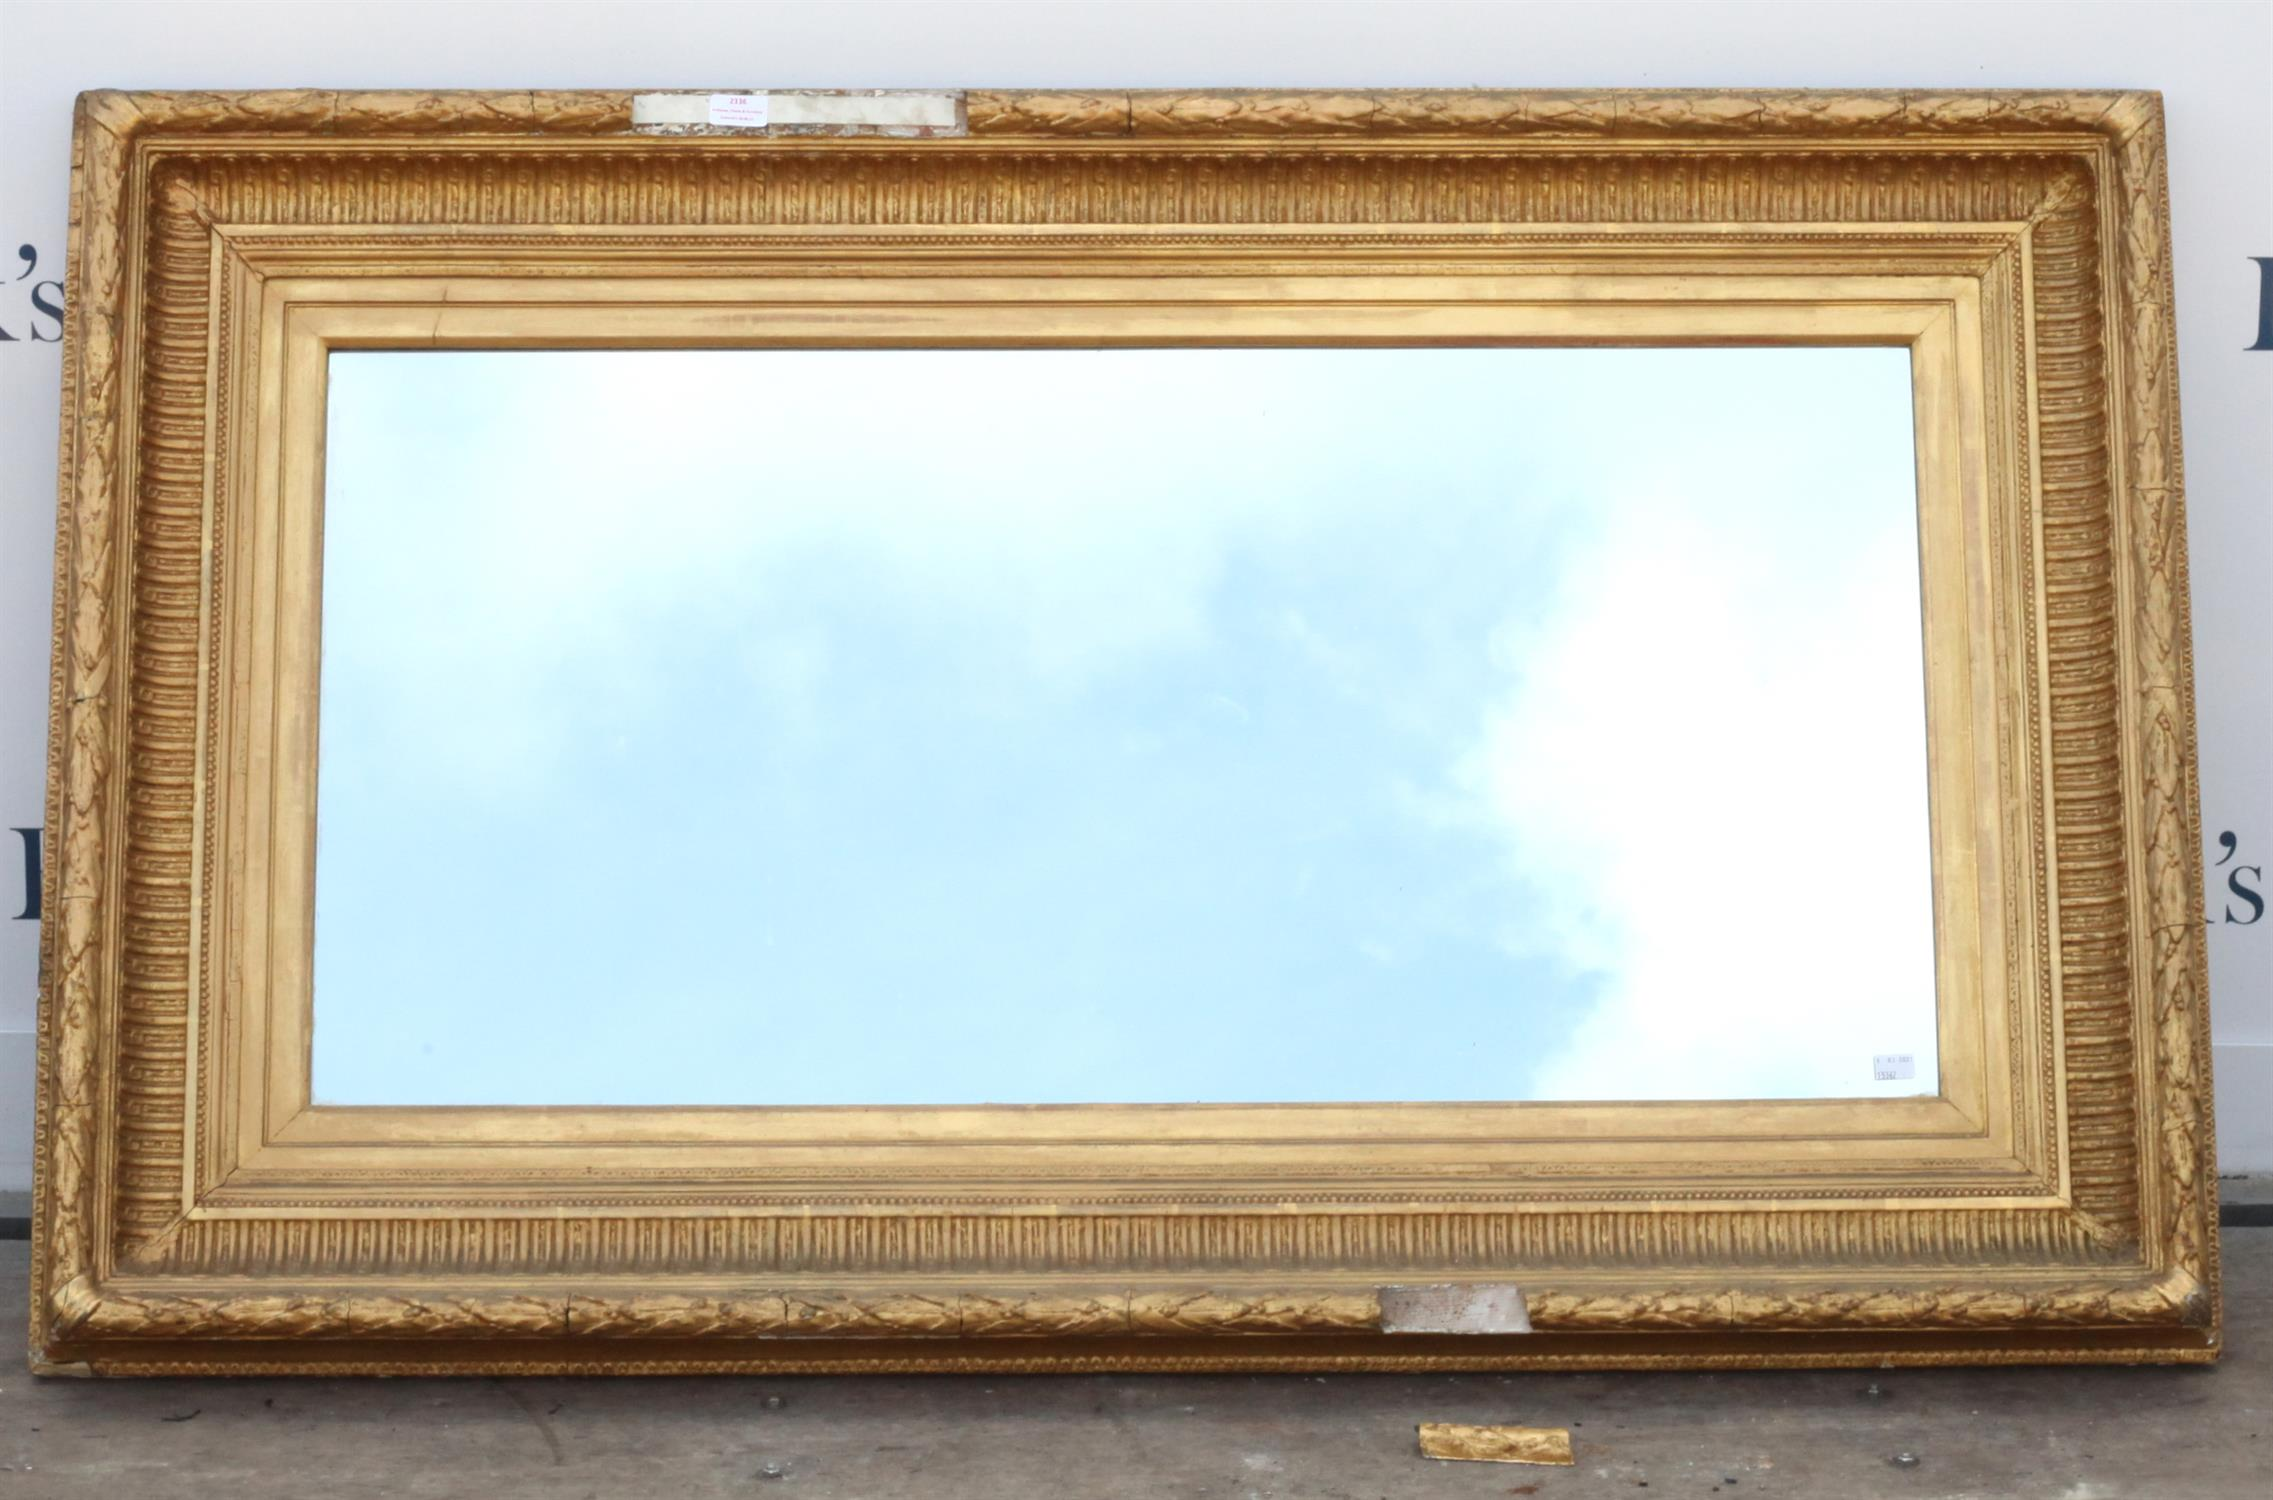 Early 20th century giltwood mirror with rectangular glass plate and floral frame, 86 x 140cm